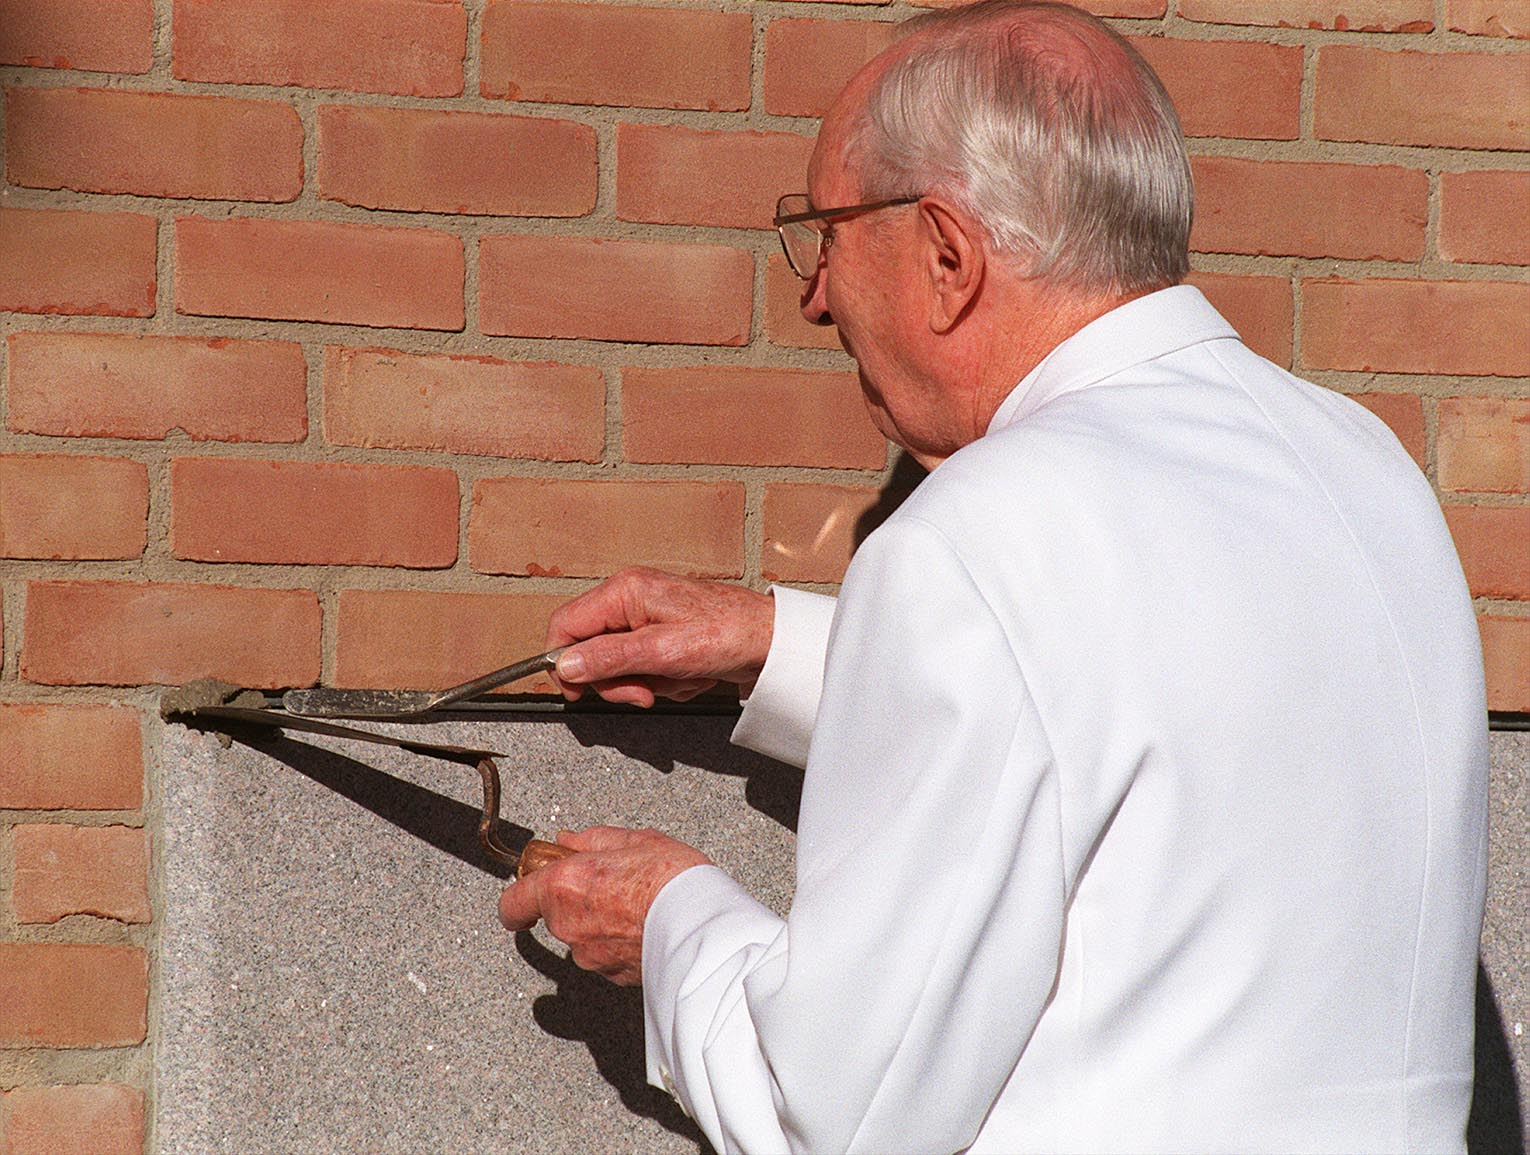 President Hinckley applies morter to the cornerstone of the Vernal Utah Temple.